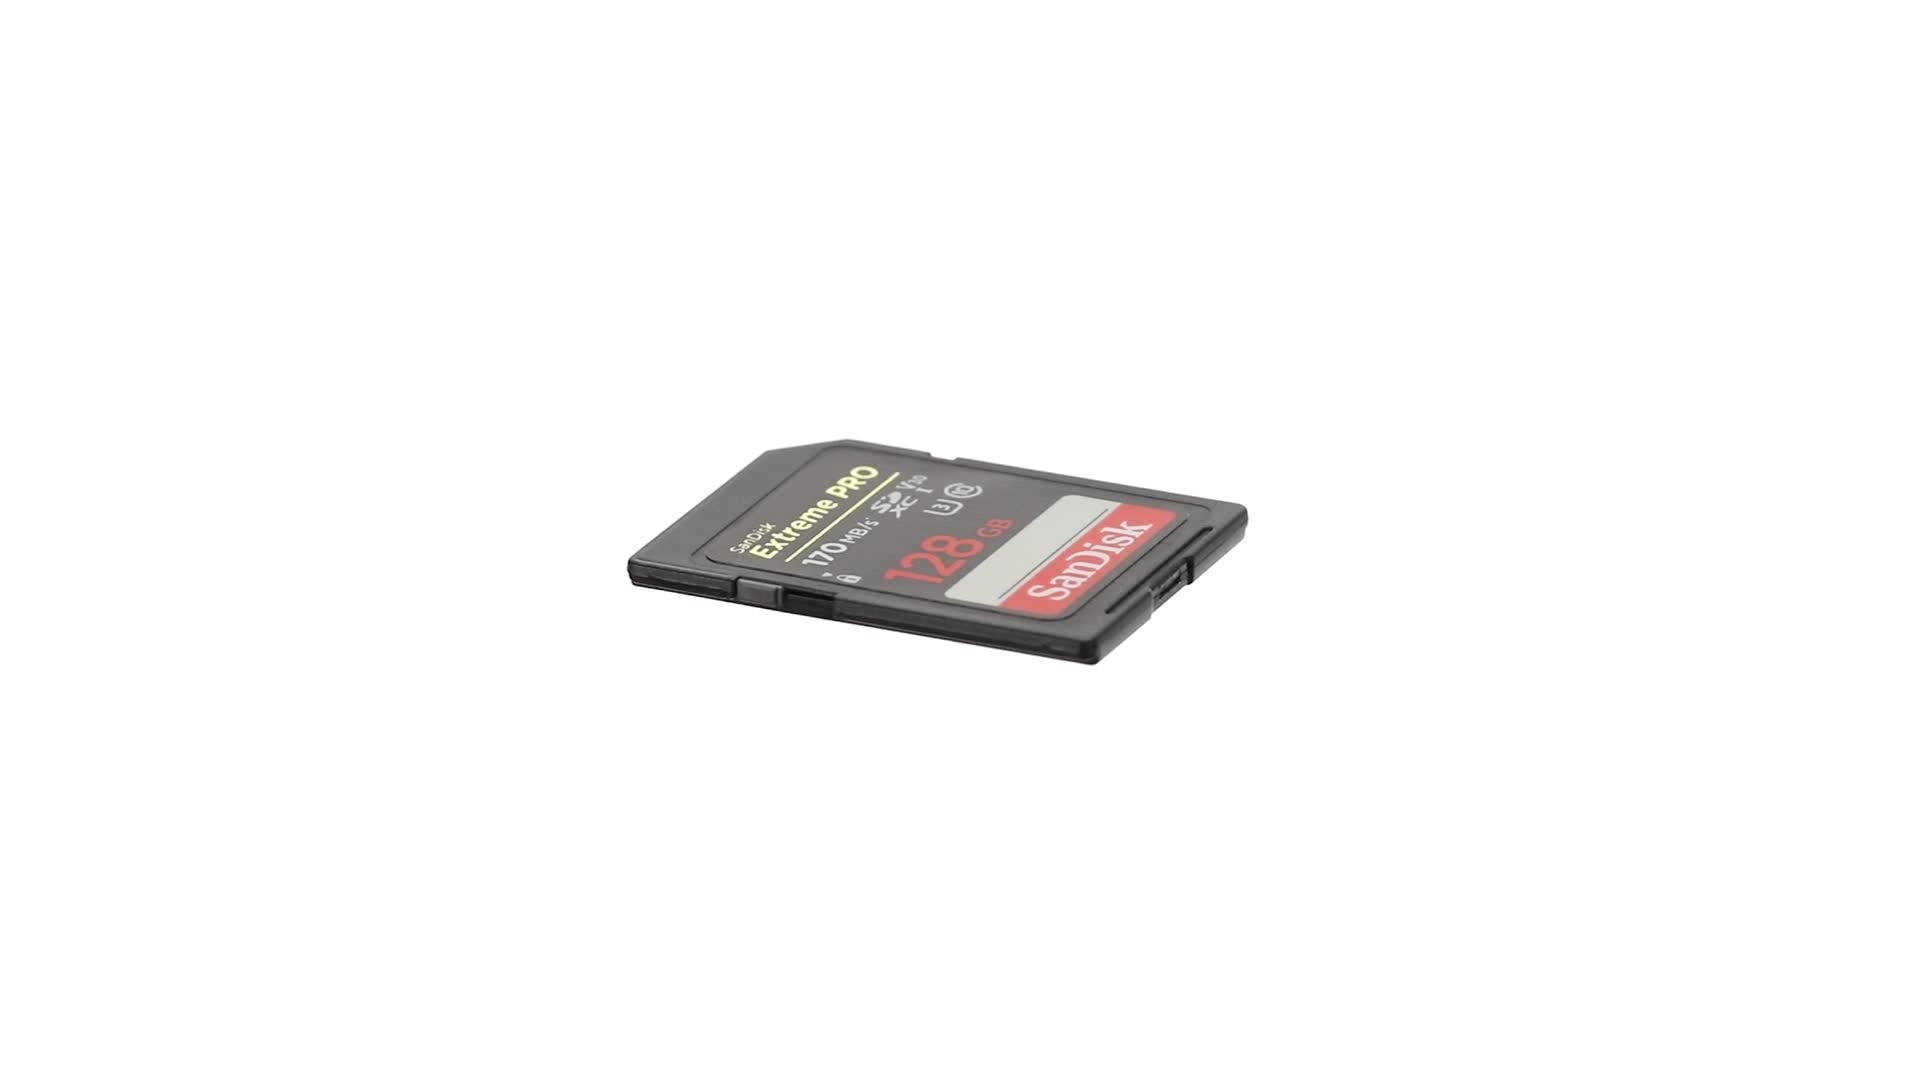 Built for Lifetime of Use! Heat /& Cold Resistant MIXZA Performance Grade 128GB Verified for LG V700 MicroSDXC Card is Pro-Speed UHS-395MBs